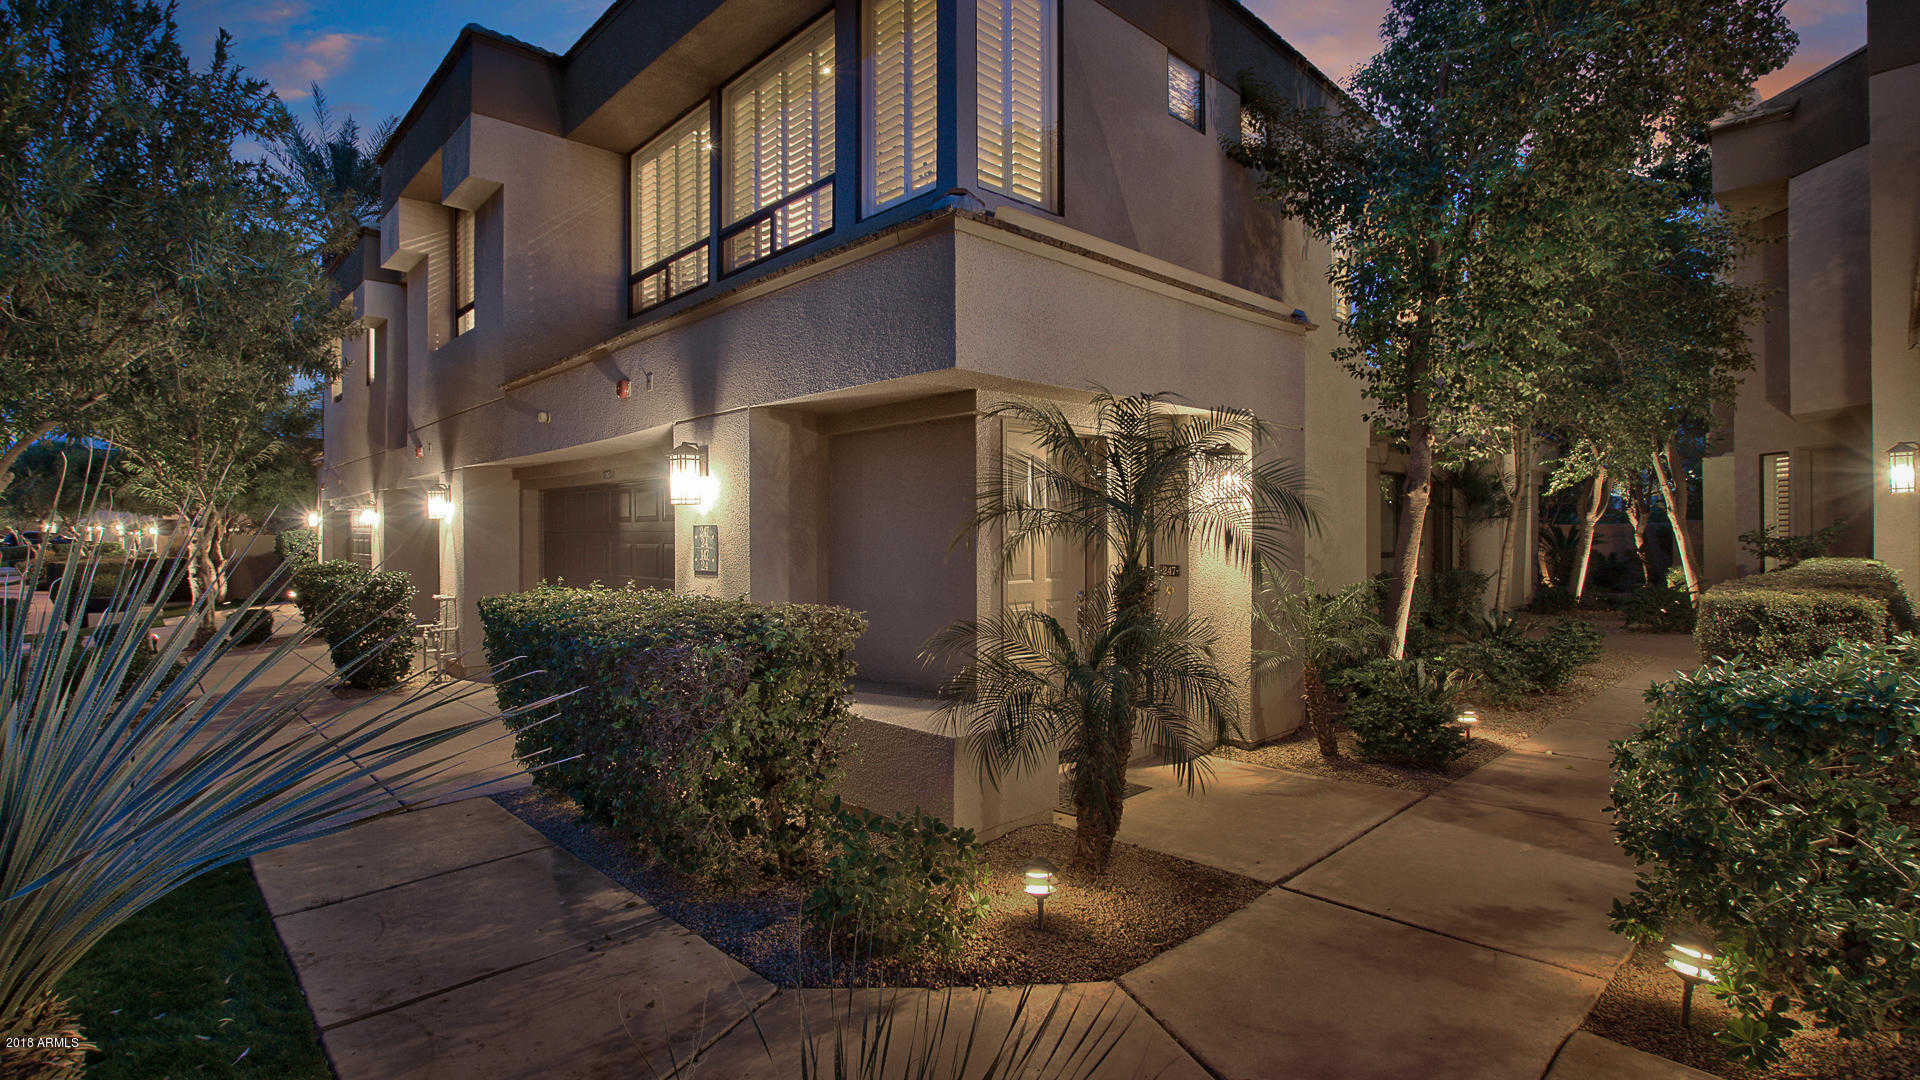 $515,000 - 2Br/2Ba -  for Sale in Gainey Ranch, Scottsdale